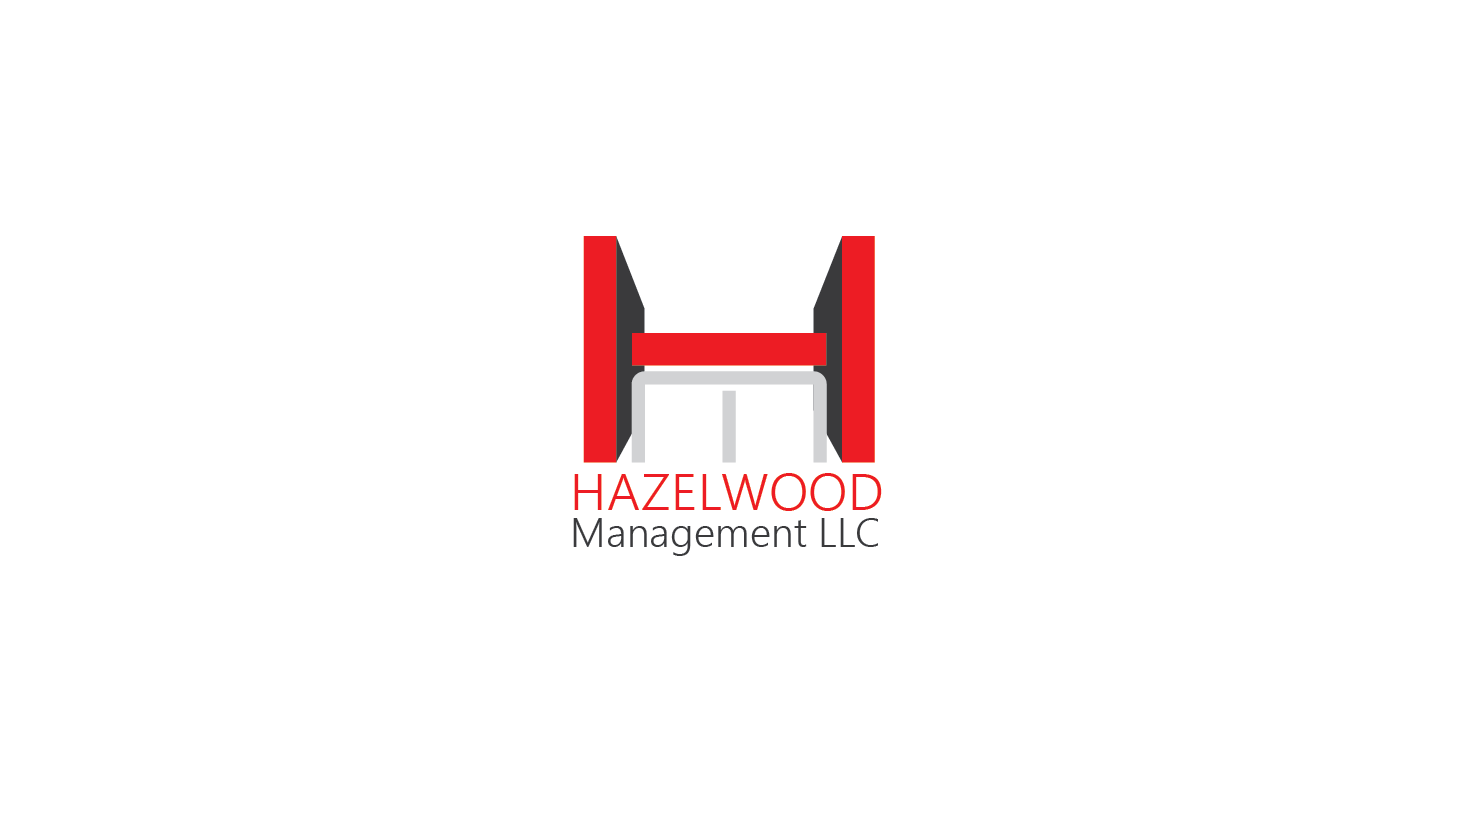 Logo Design by Private User - Entry No. 133 in the Logo Design Contest Hazelwood Management LLC Logo Design.